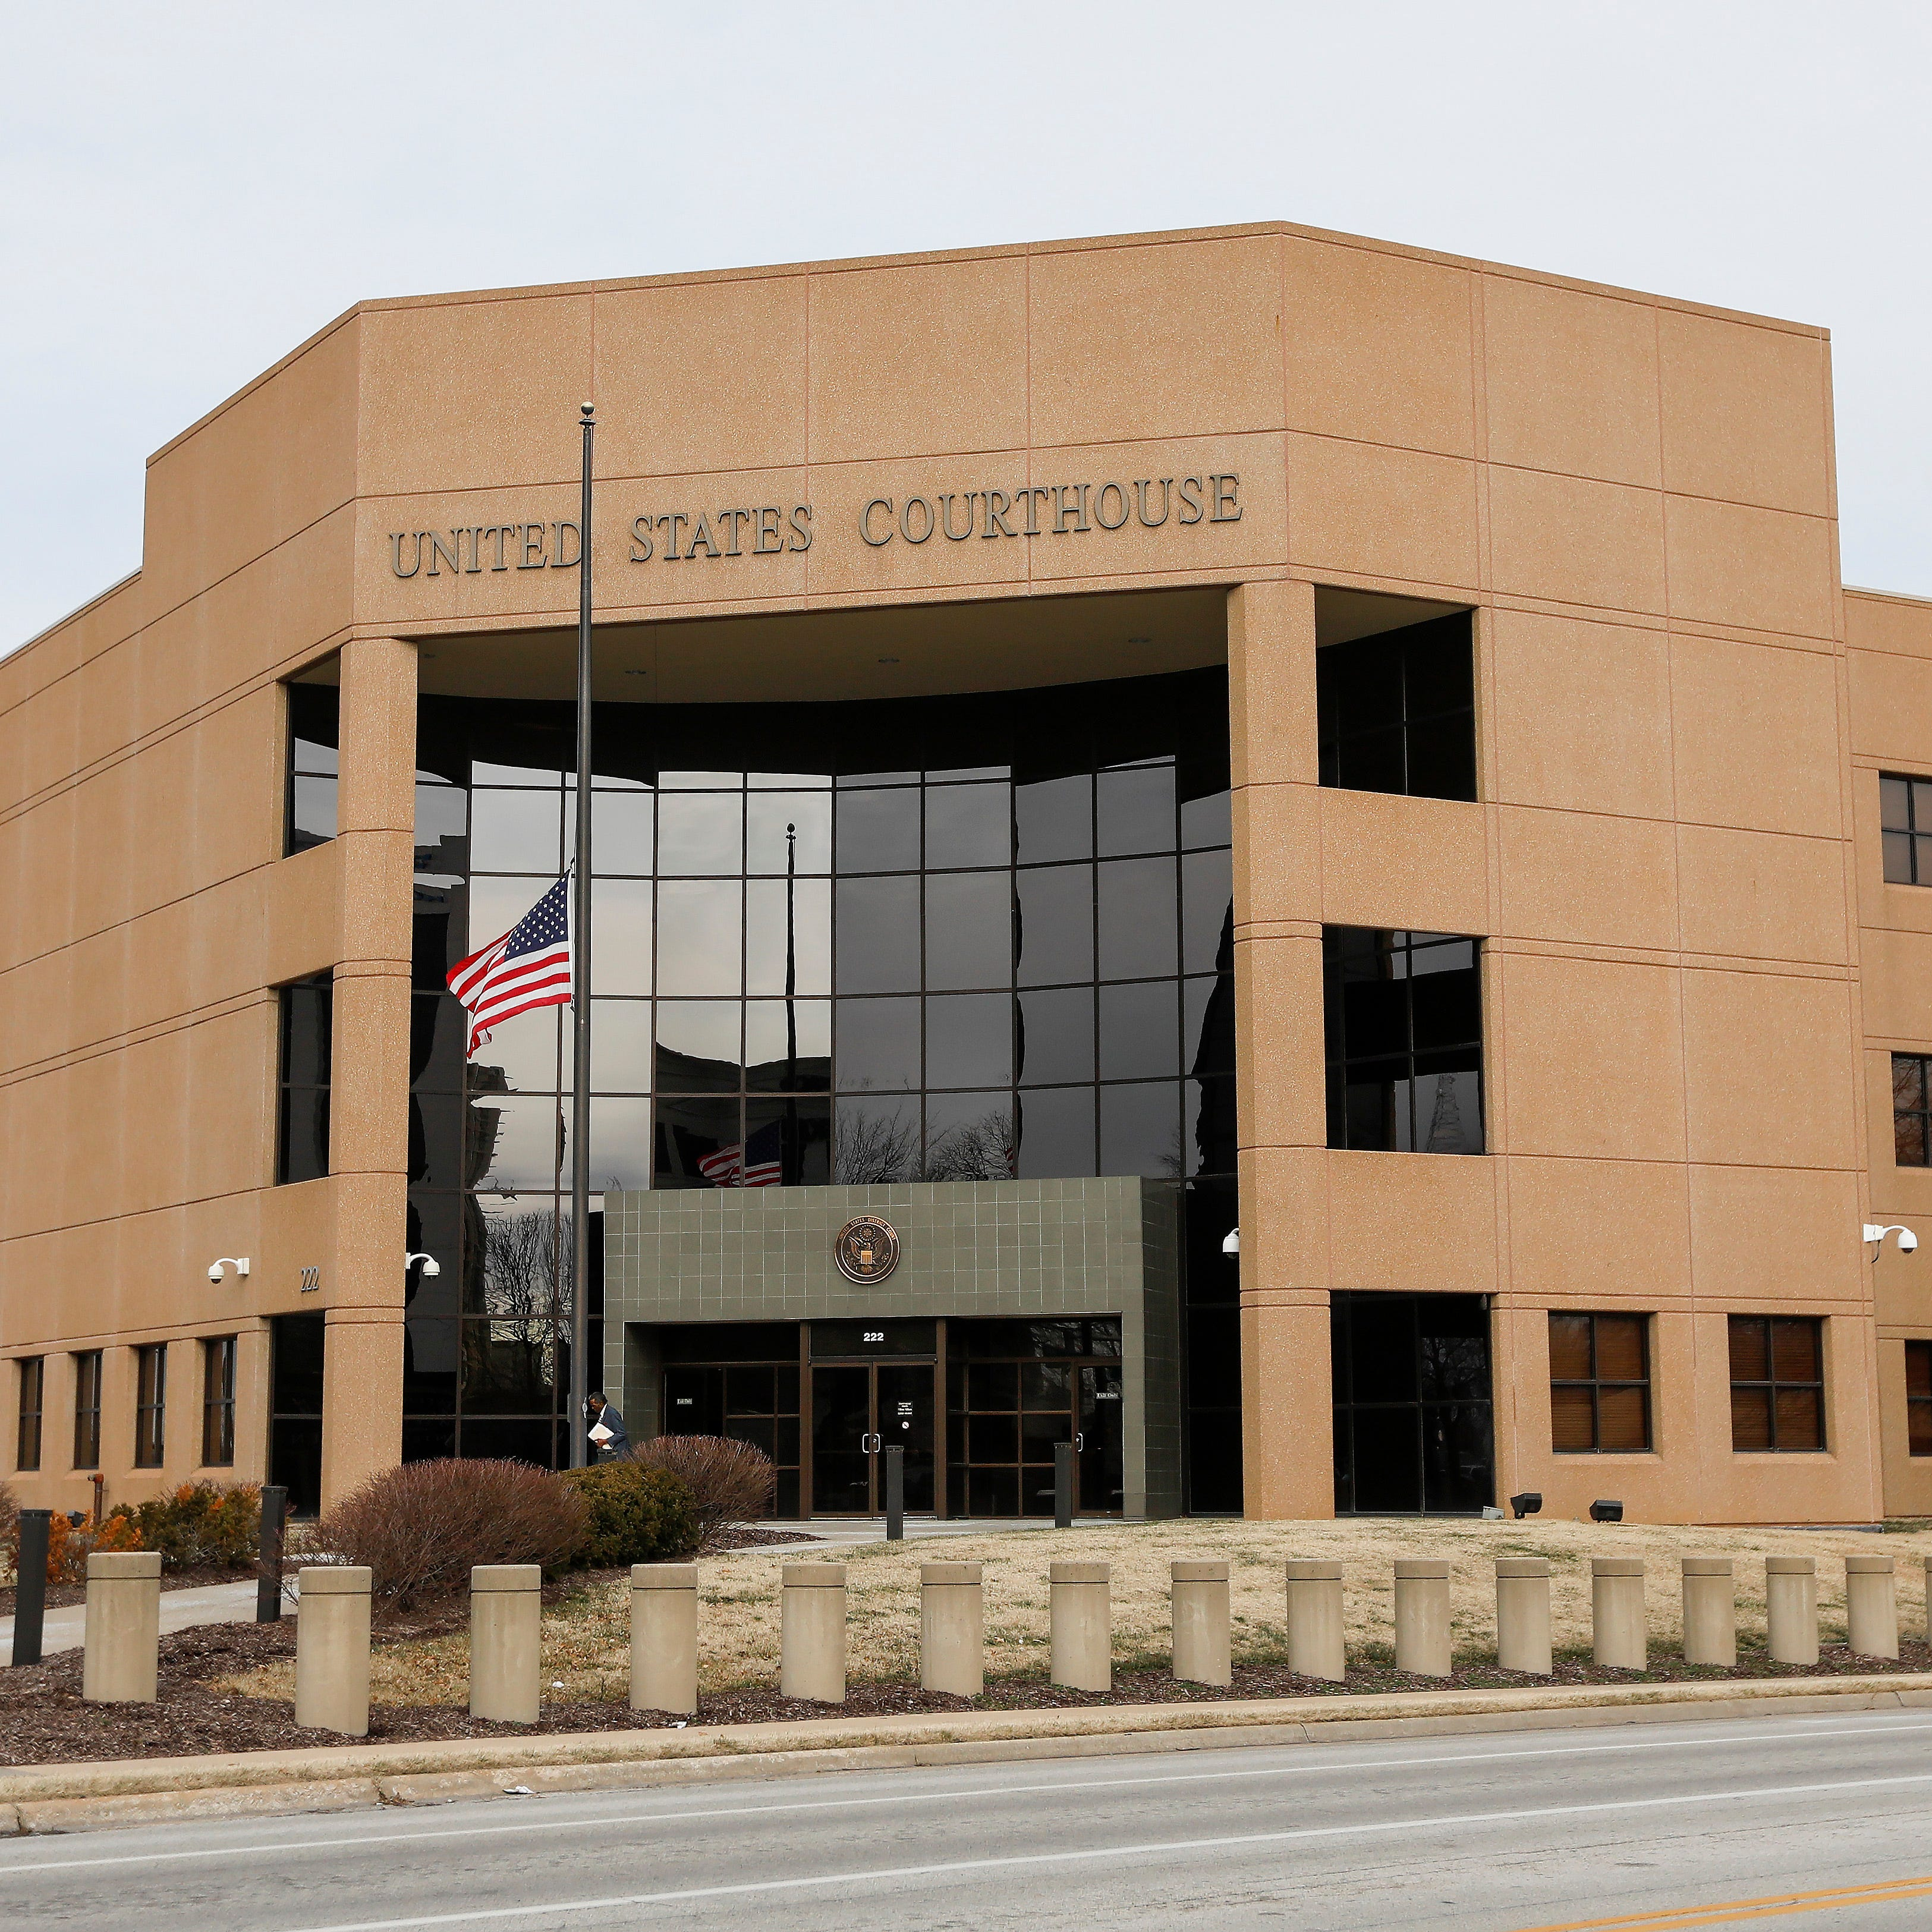 The United States Federal Courthouse located at 222 E St. Louis St.